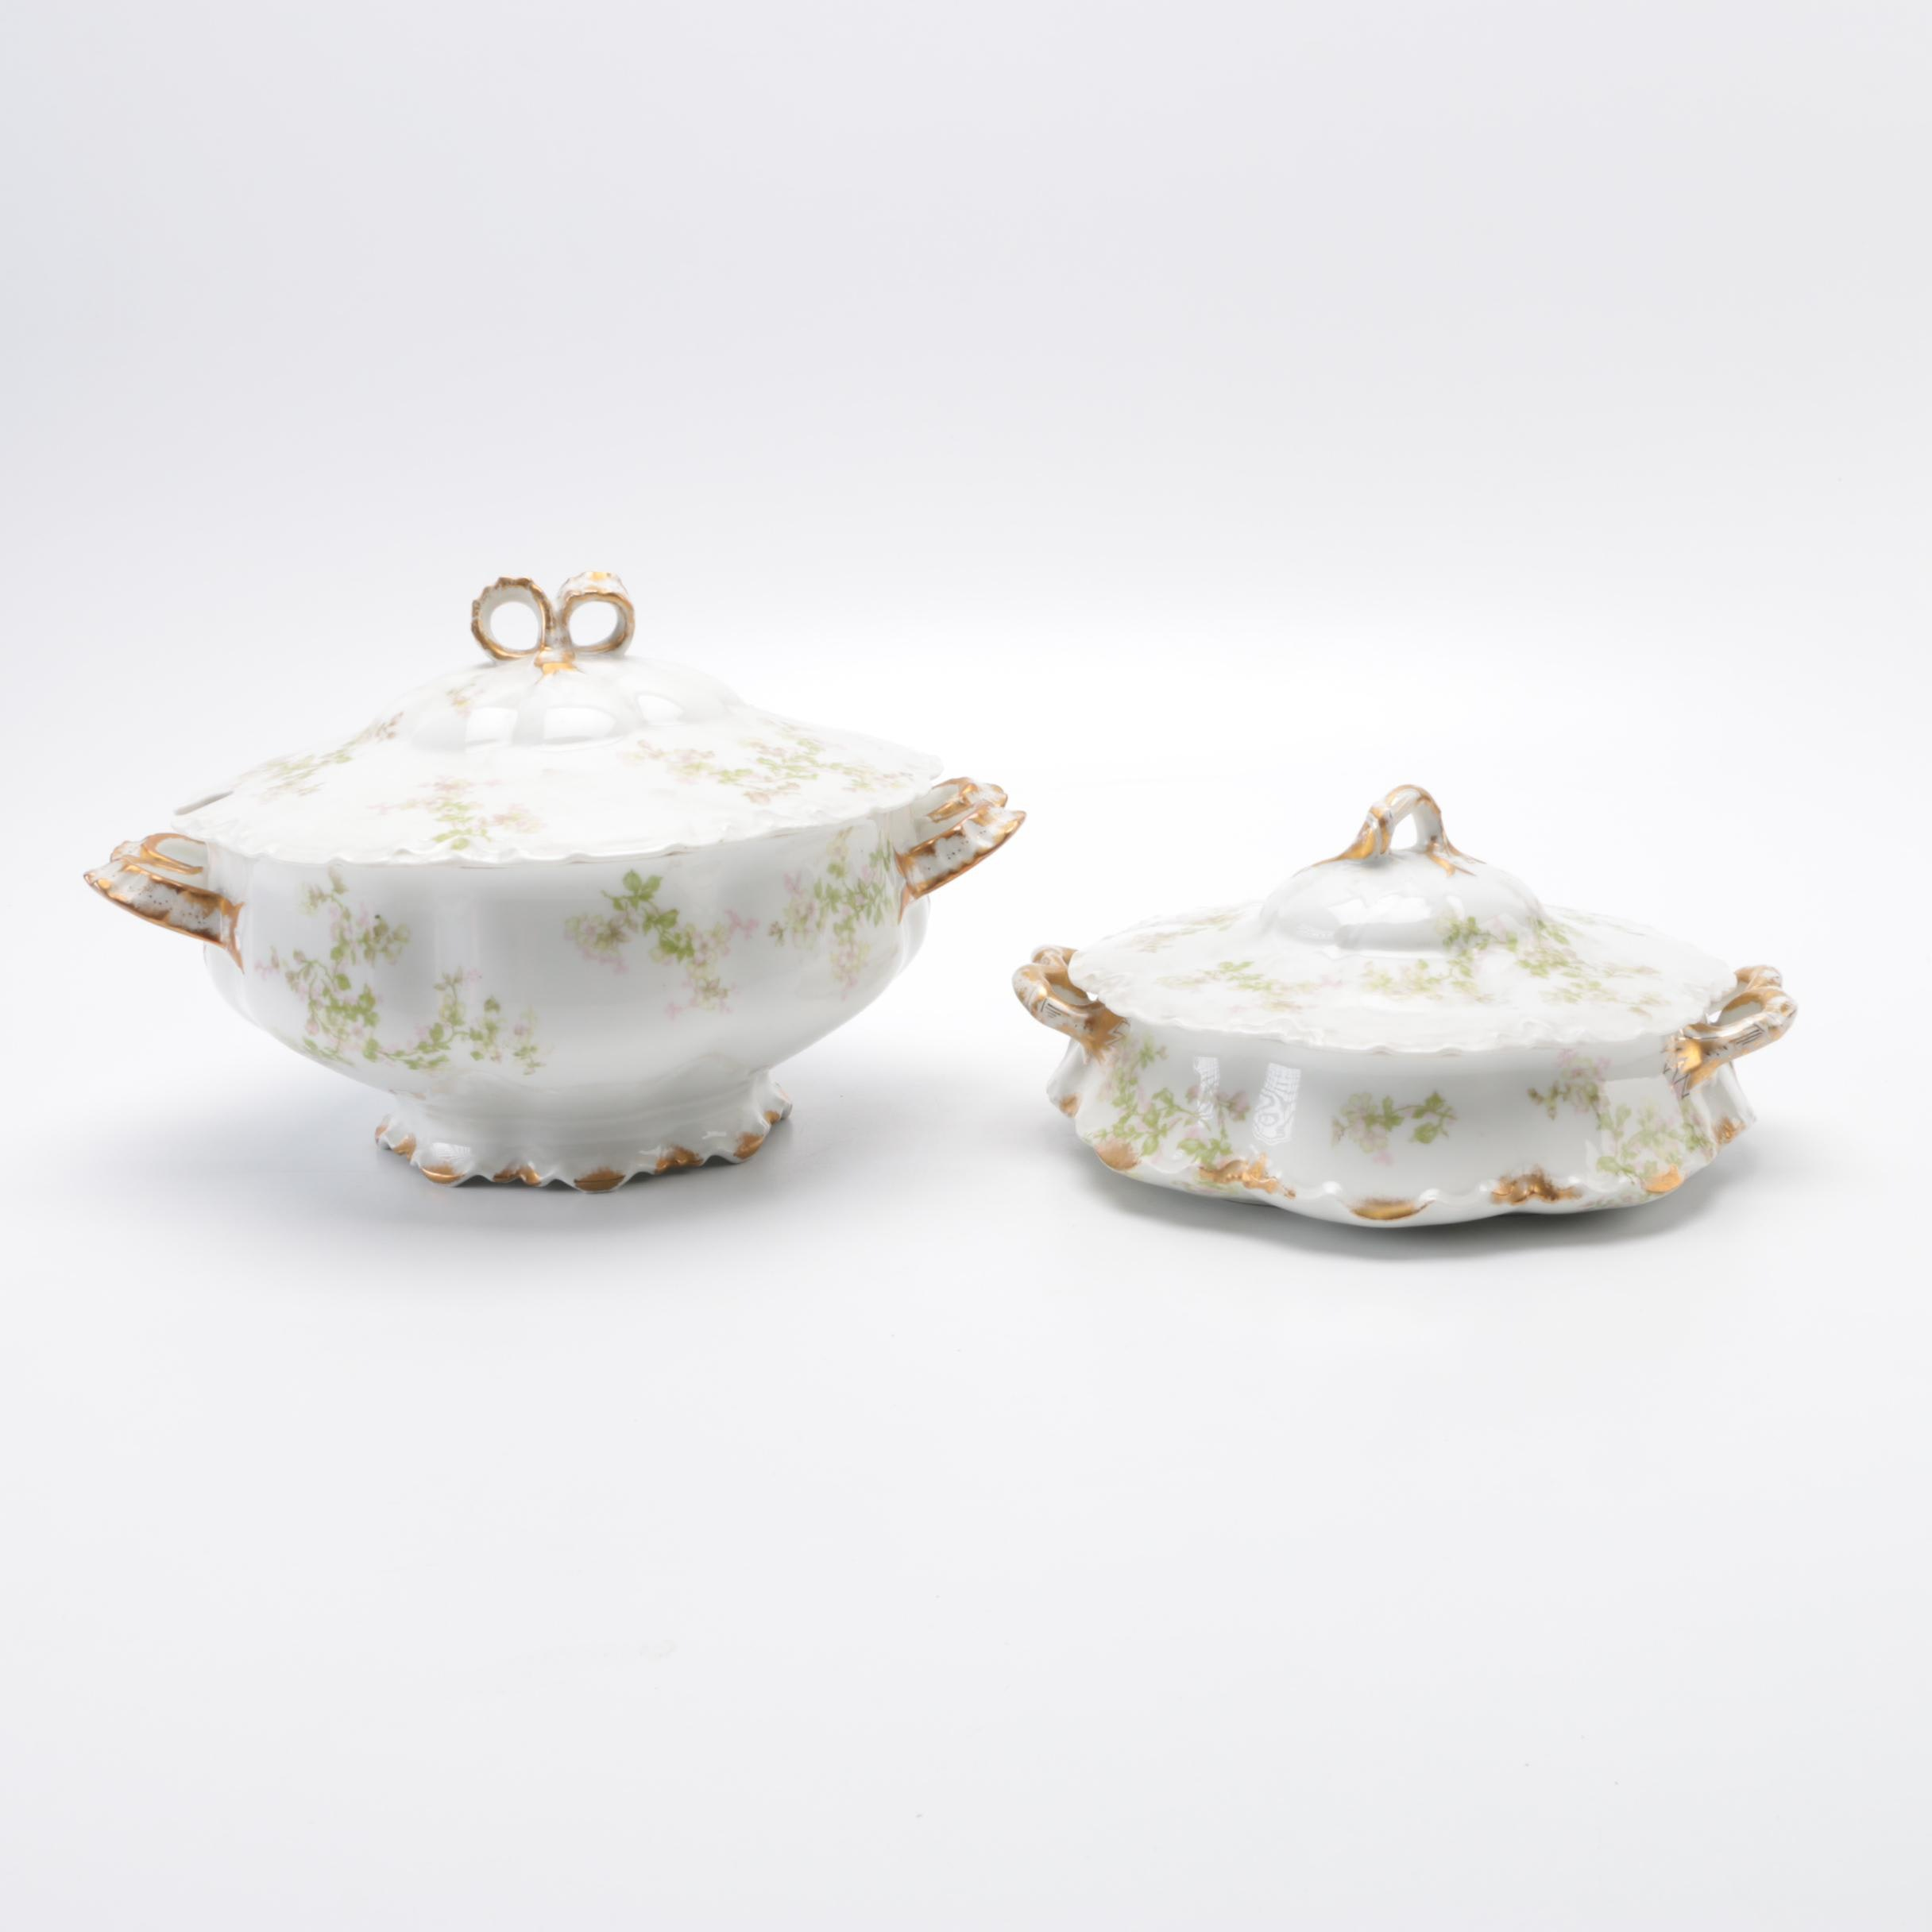 Limoges Porcelain Soup Tureen and Serving Bowl with Lid